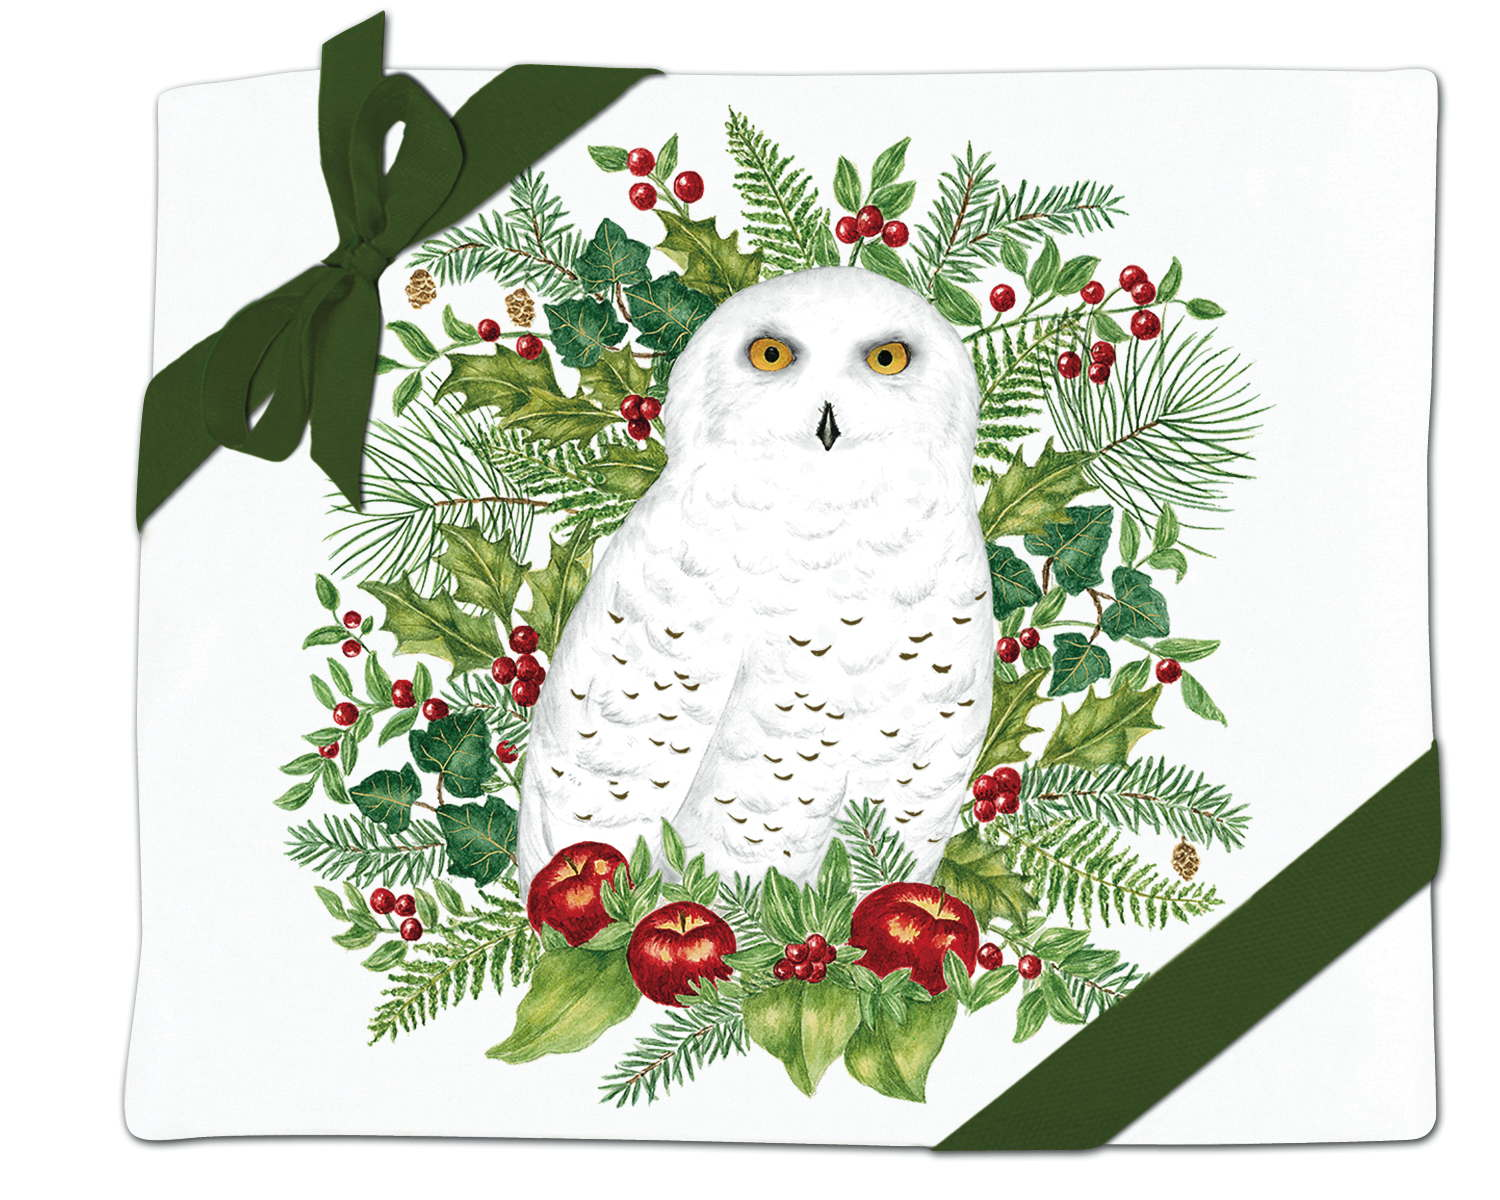 Snowy Owl Flour Sack Towel (set of 2)